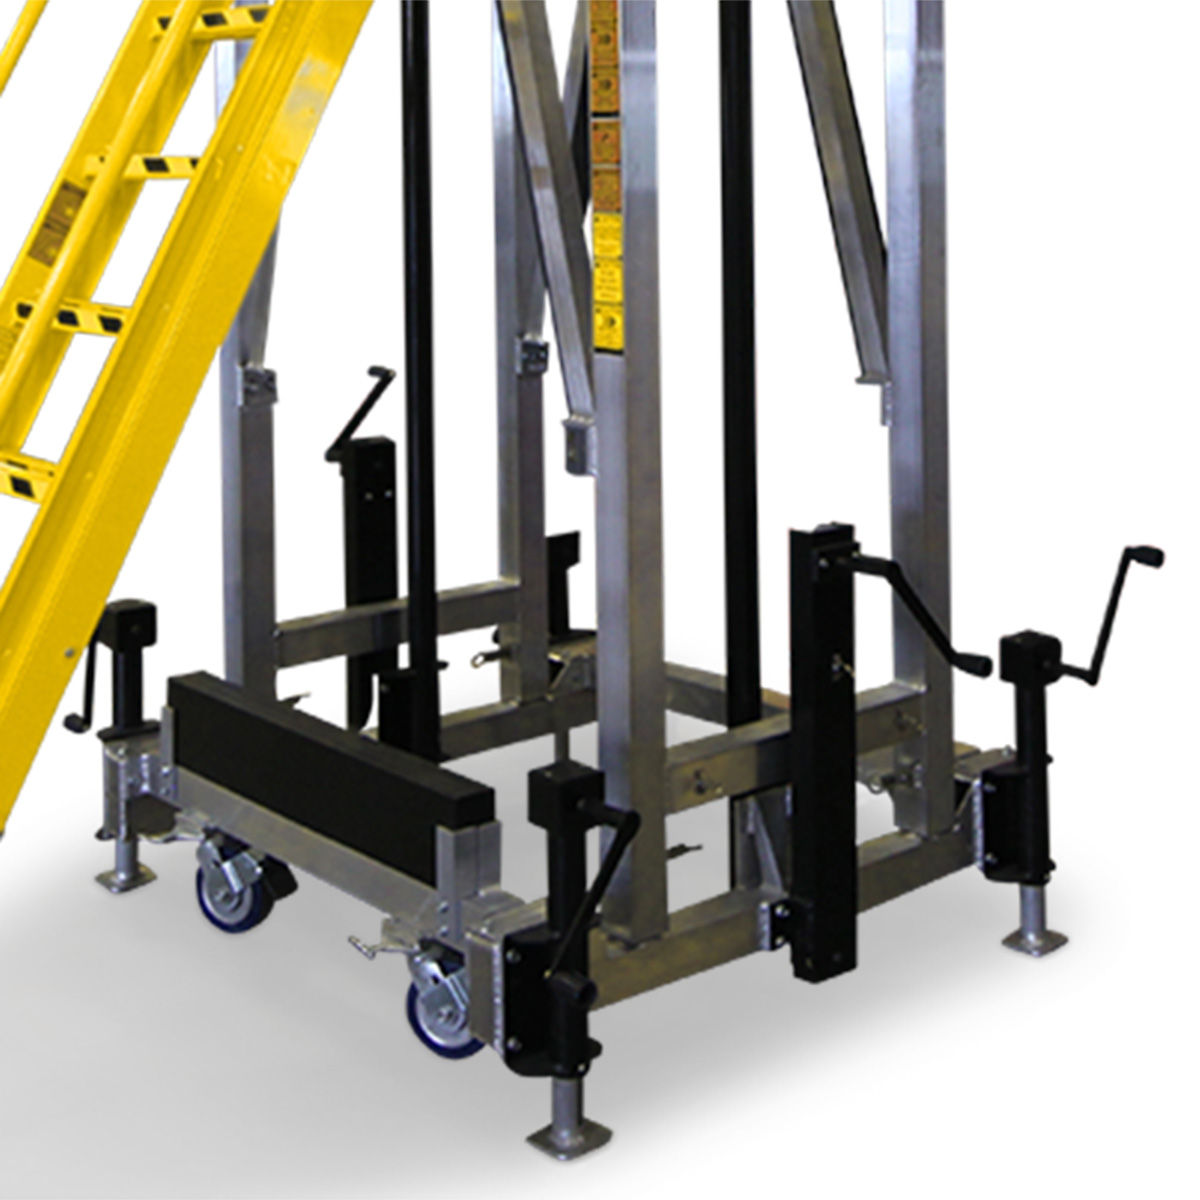 OSHA complaint mobile work stands with added stability from optional counter-weights or floor jacks.